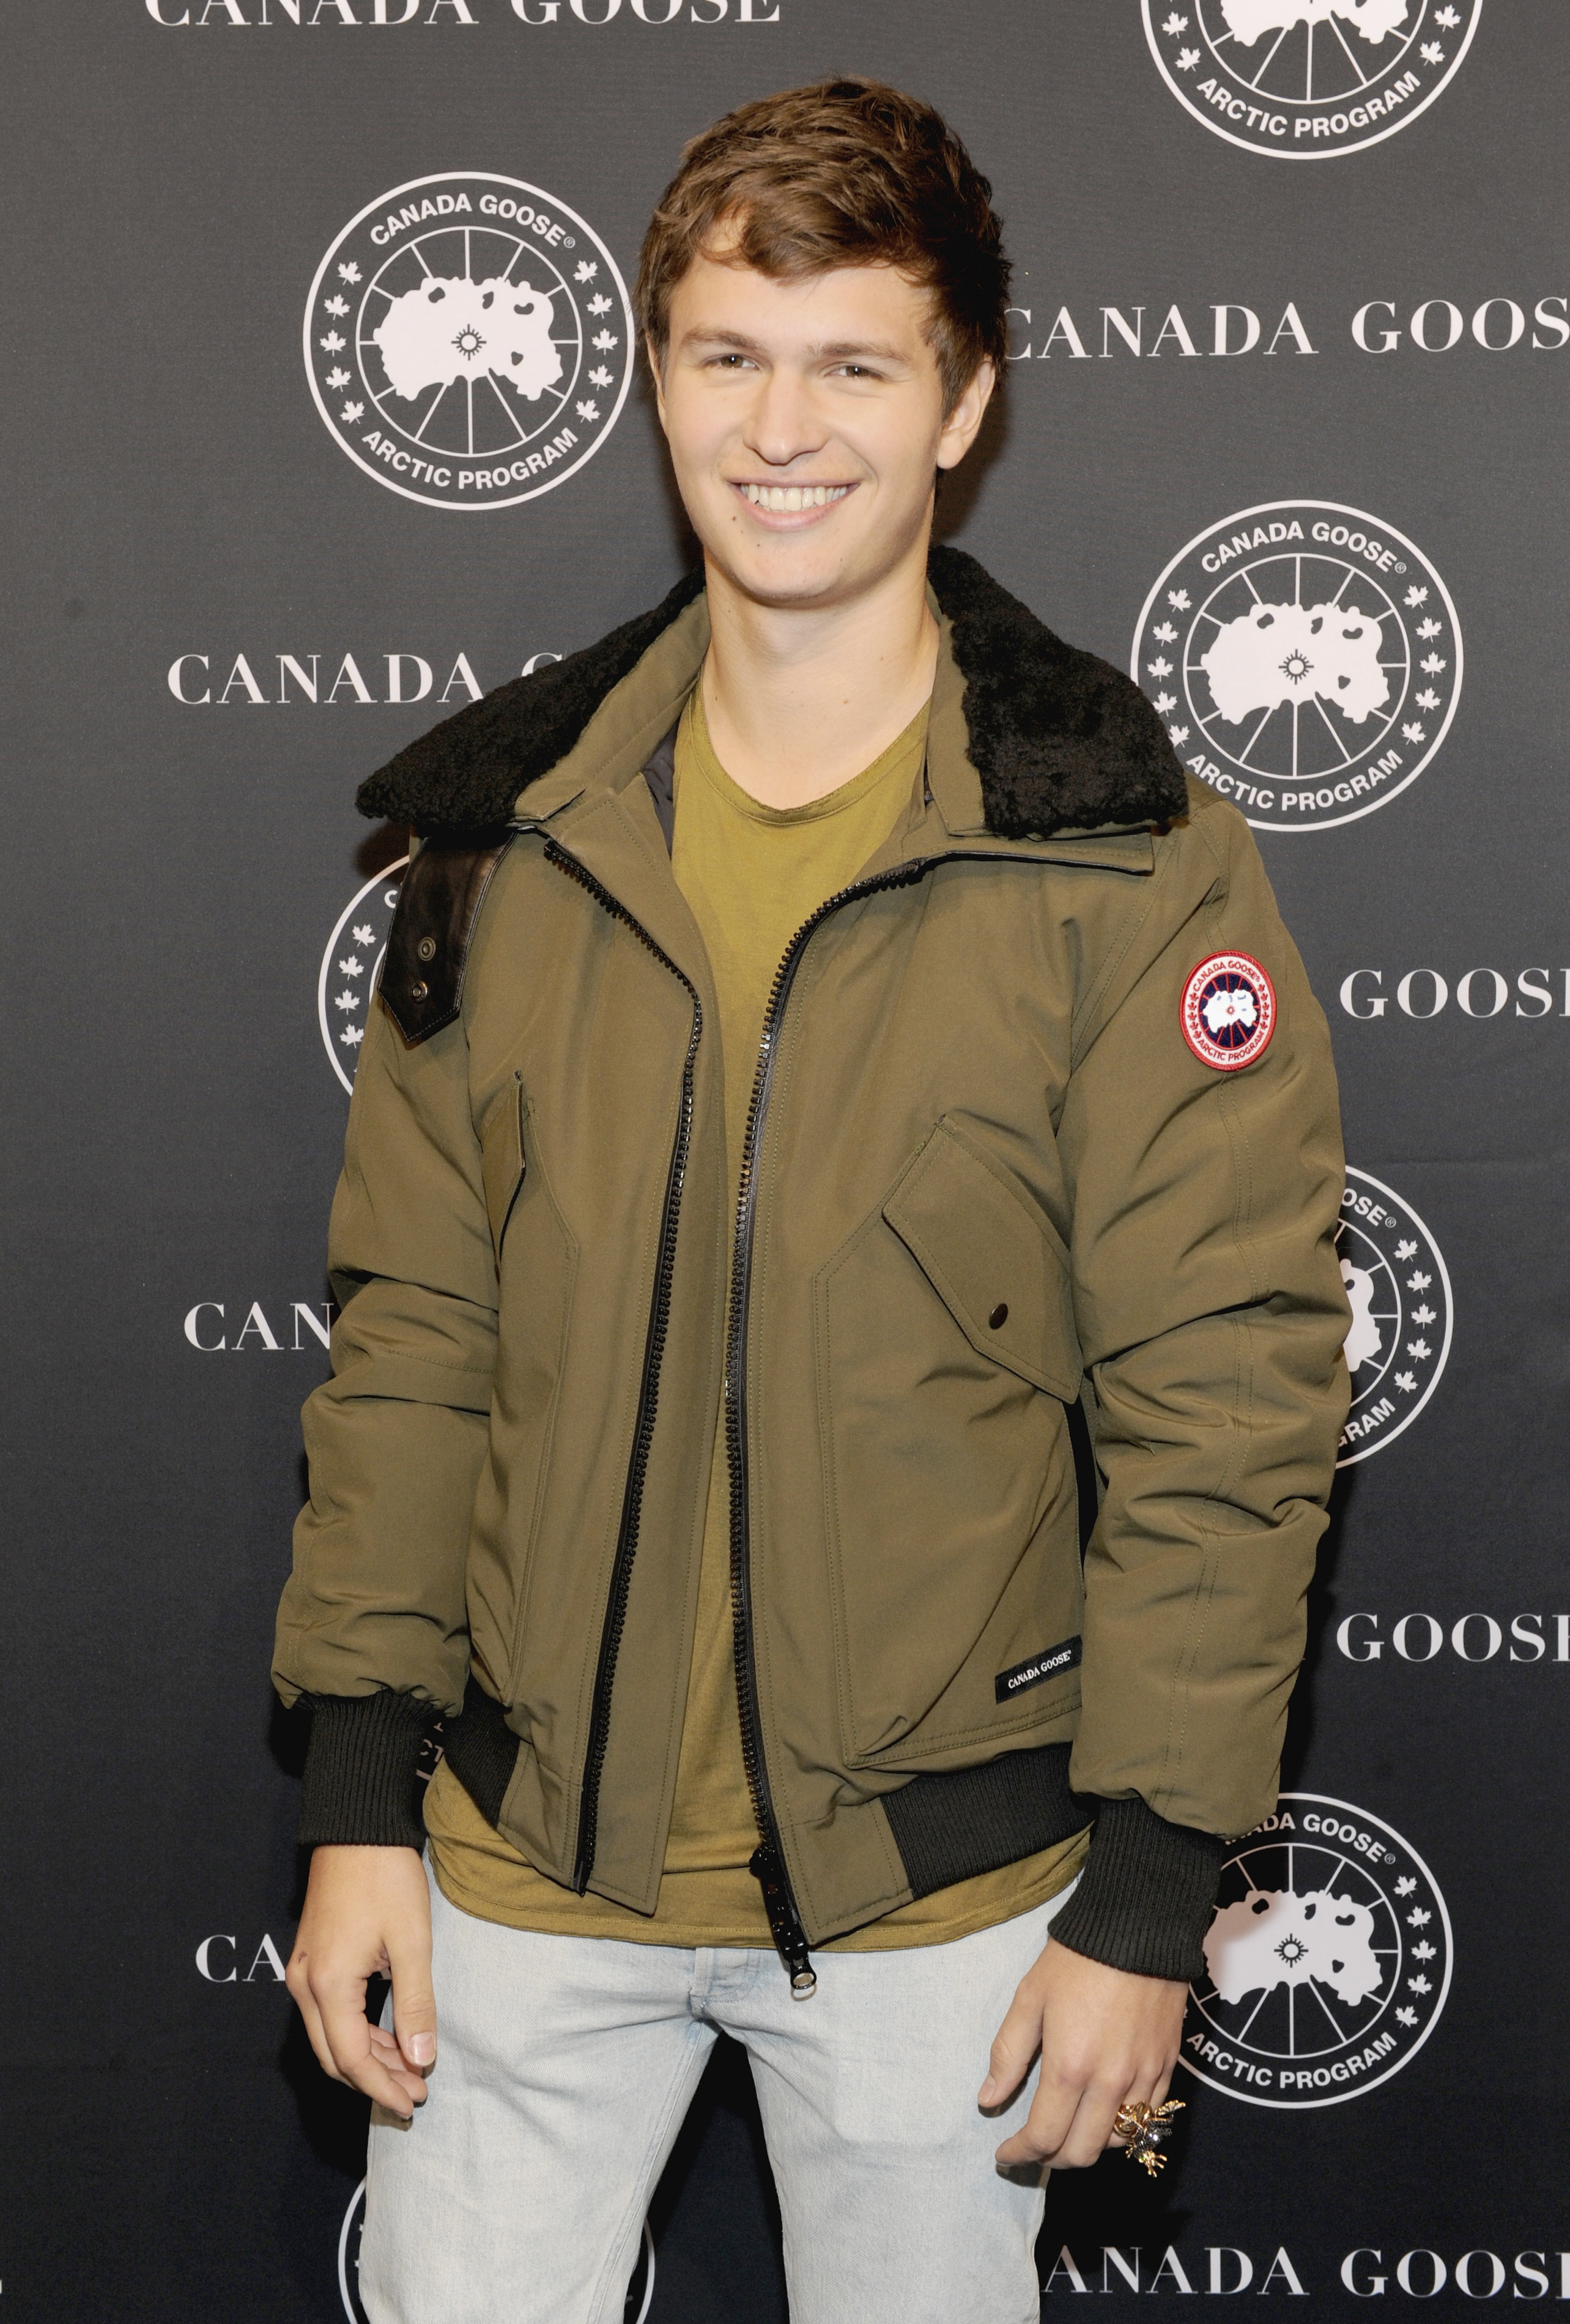 Canada Goose Spreads Its Wings And Opens U.S. Flagship In